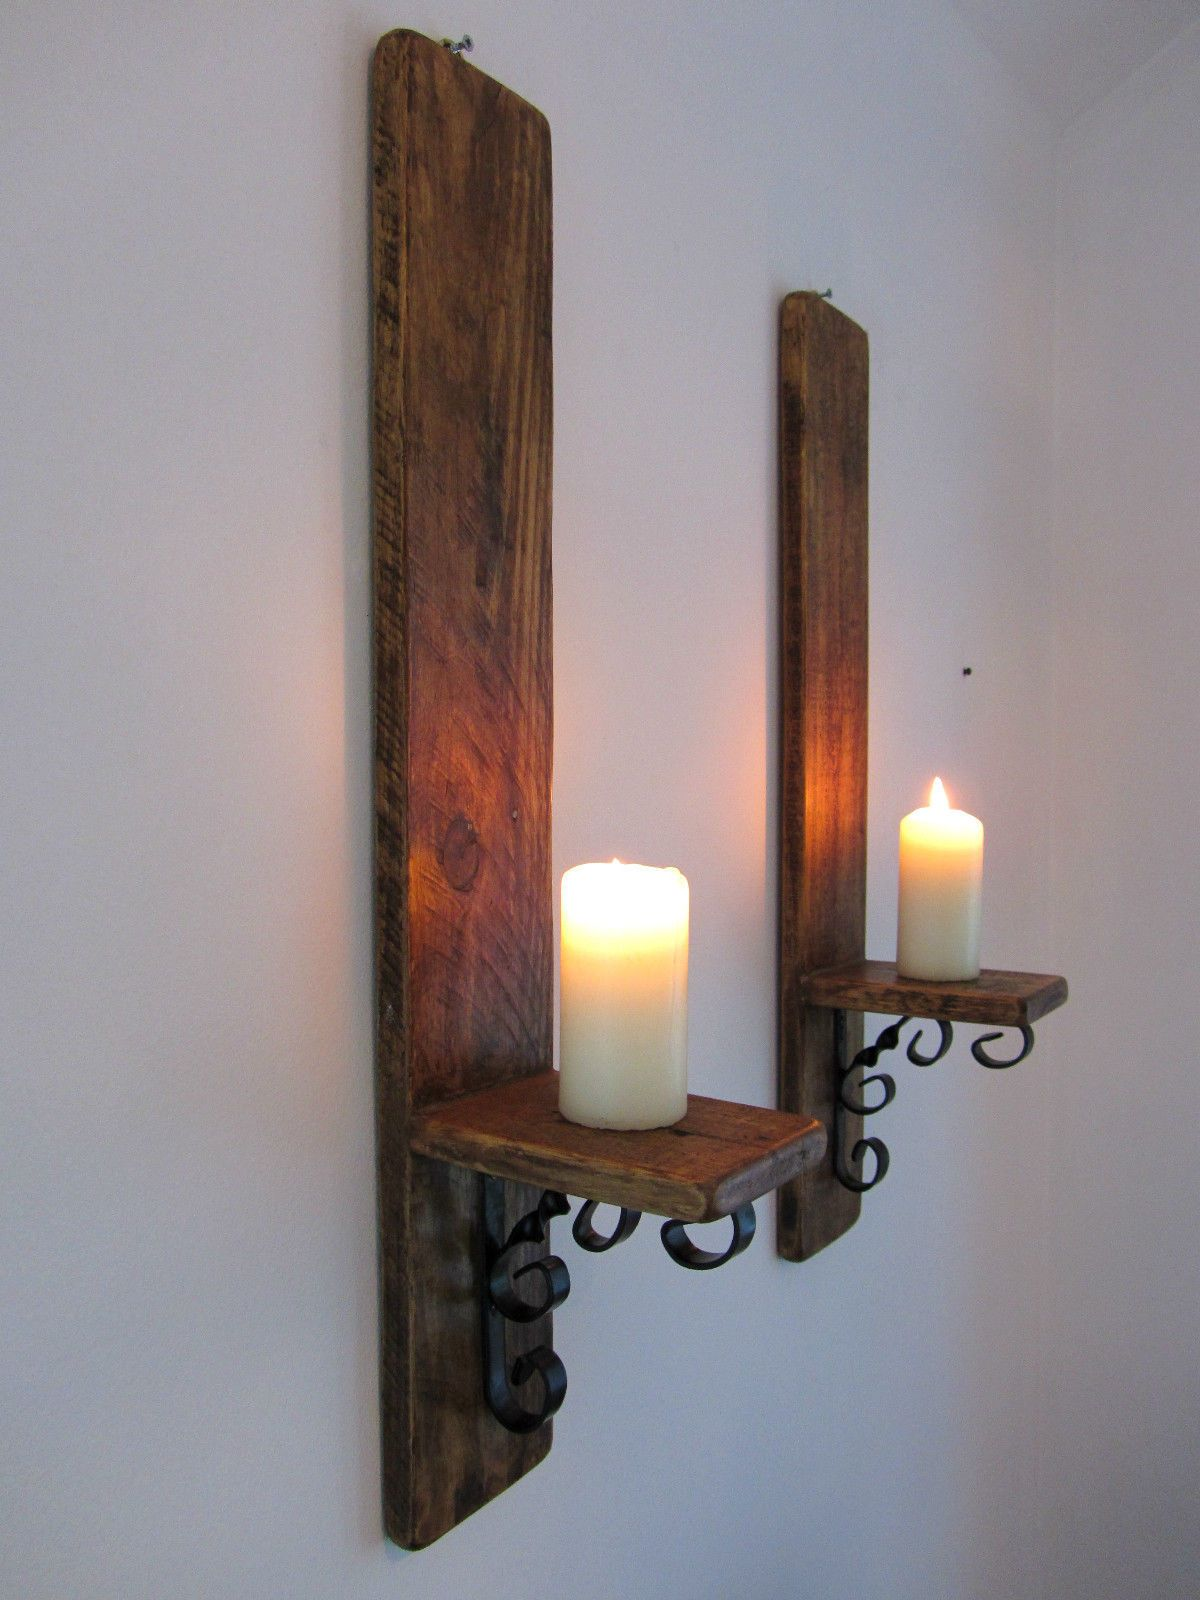 Litton Lane Gold Glass Rustic Candle Wall Sconce 91512 The Home Depot In 2021 Iron Candle Sconce Candle Sconces Wall Candles